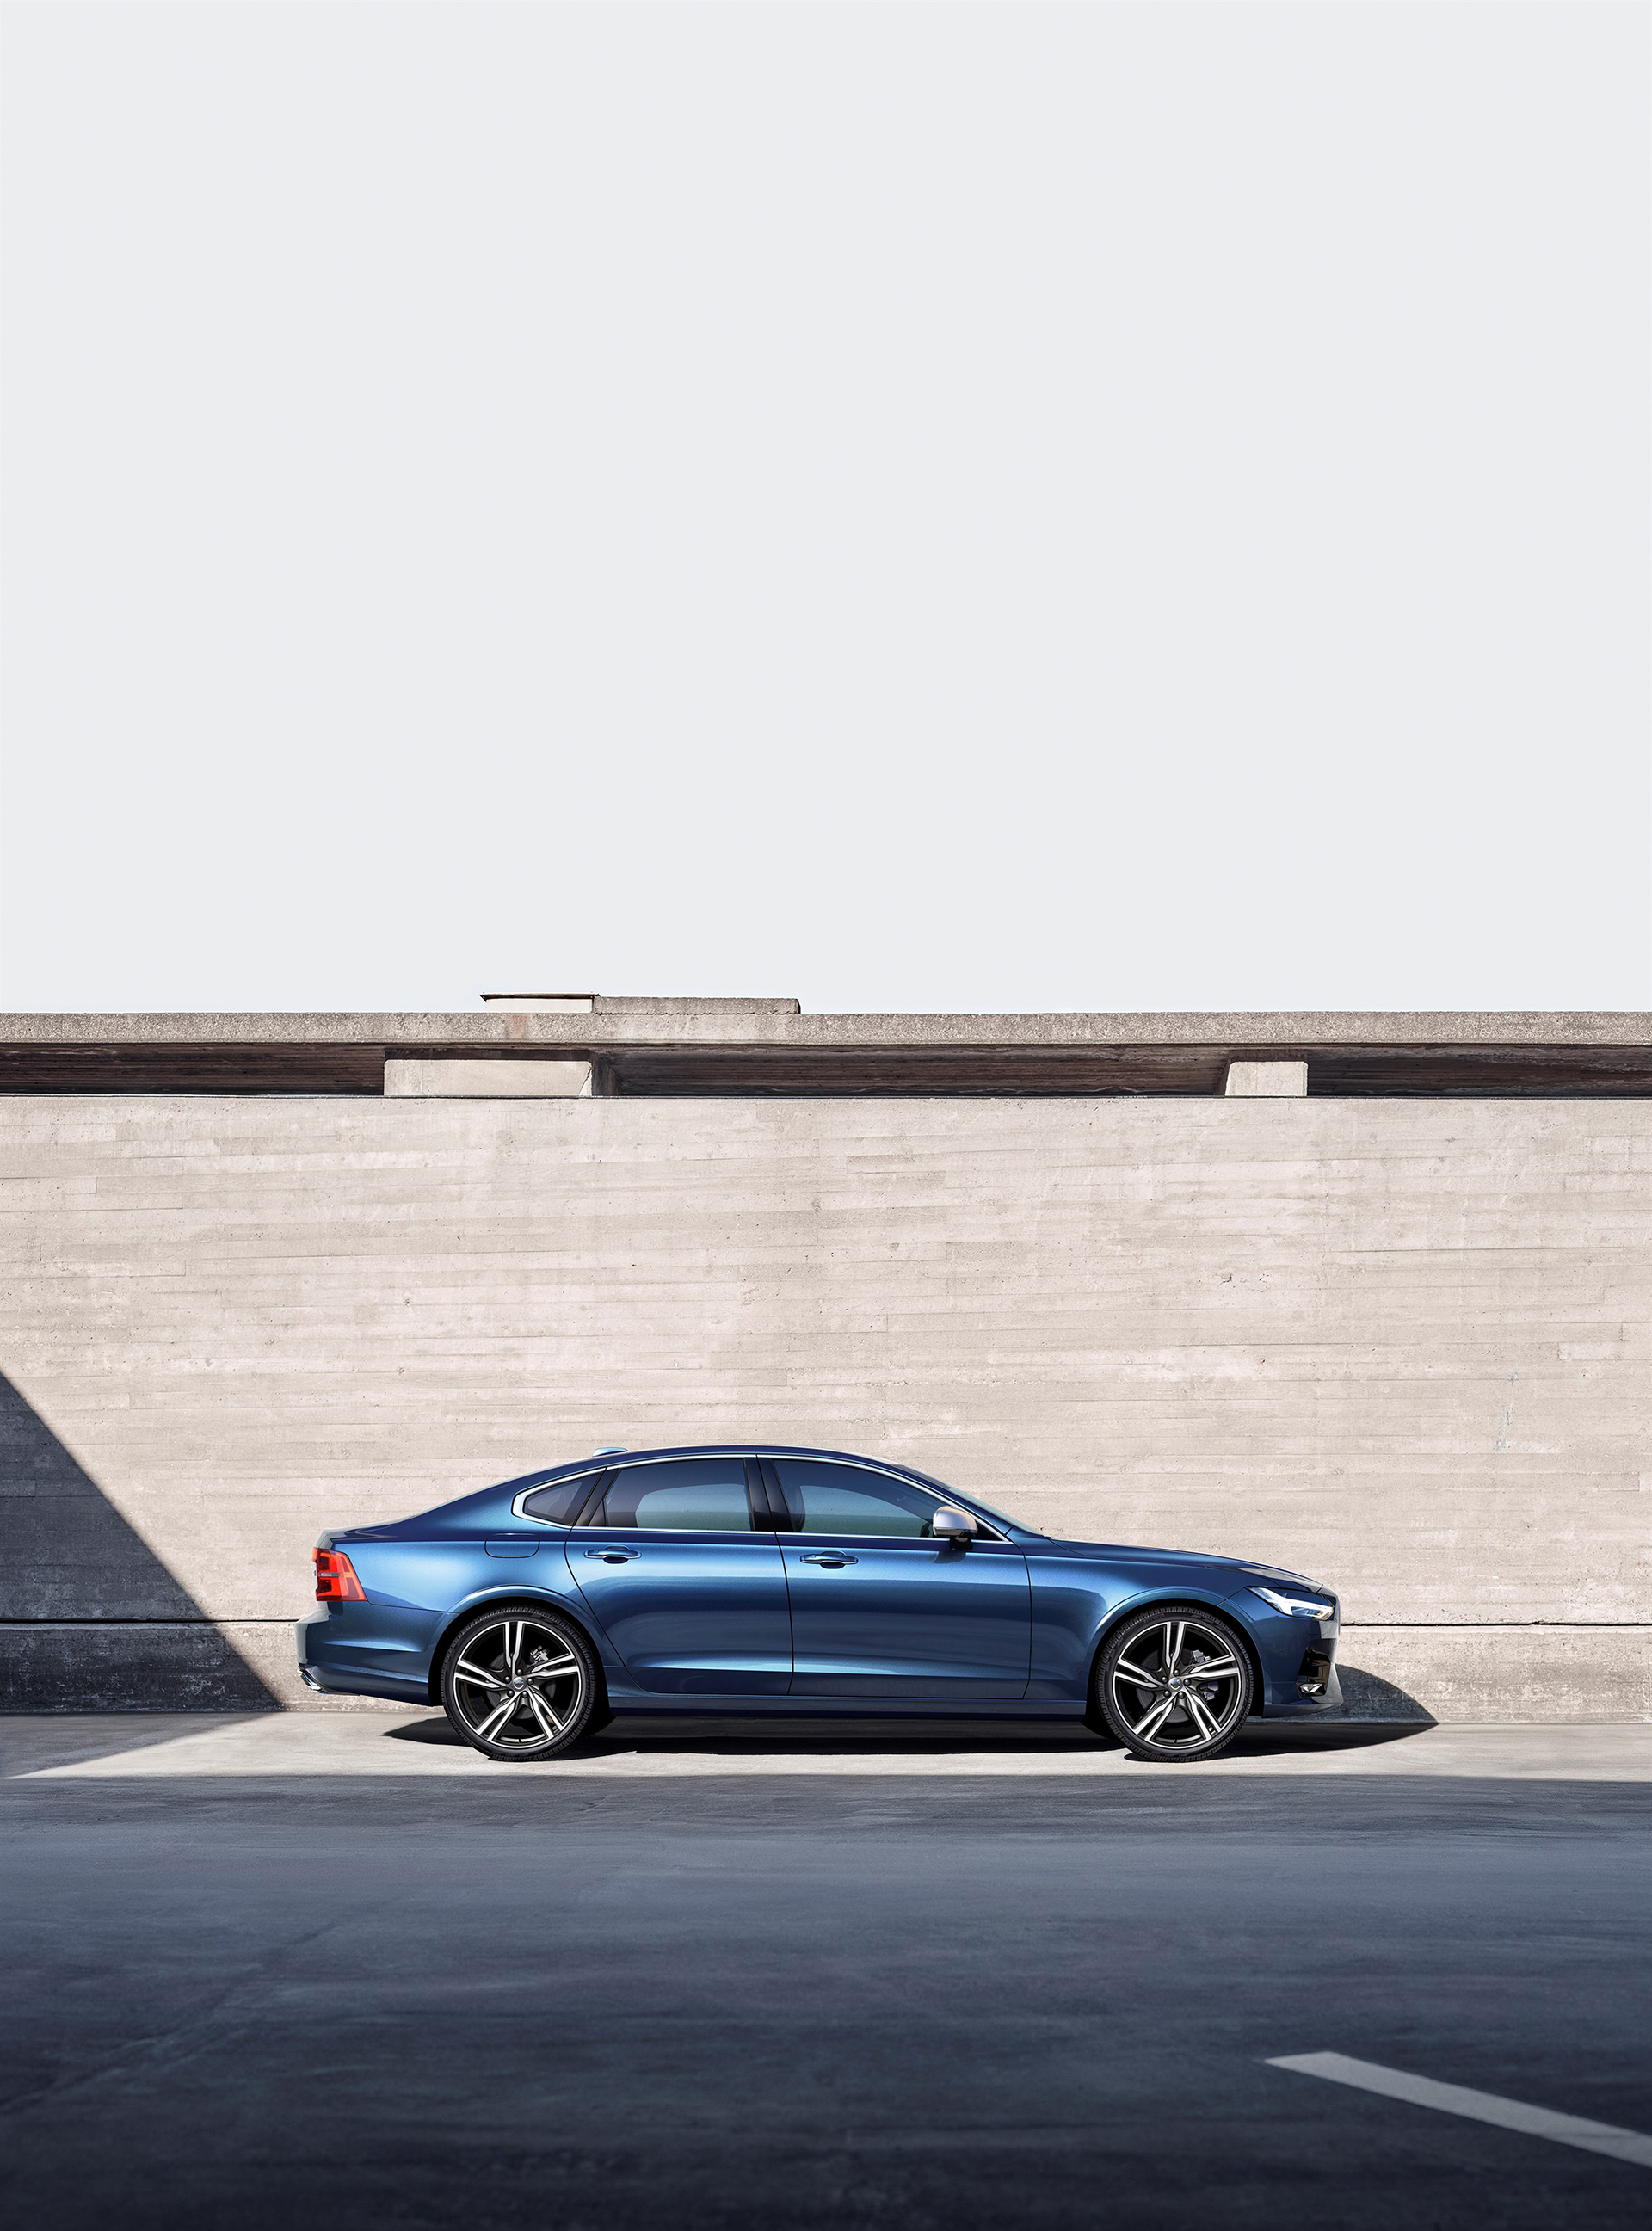 192804 Volvo S90 R Design Location